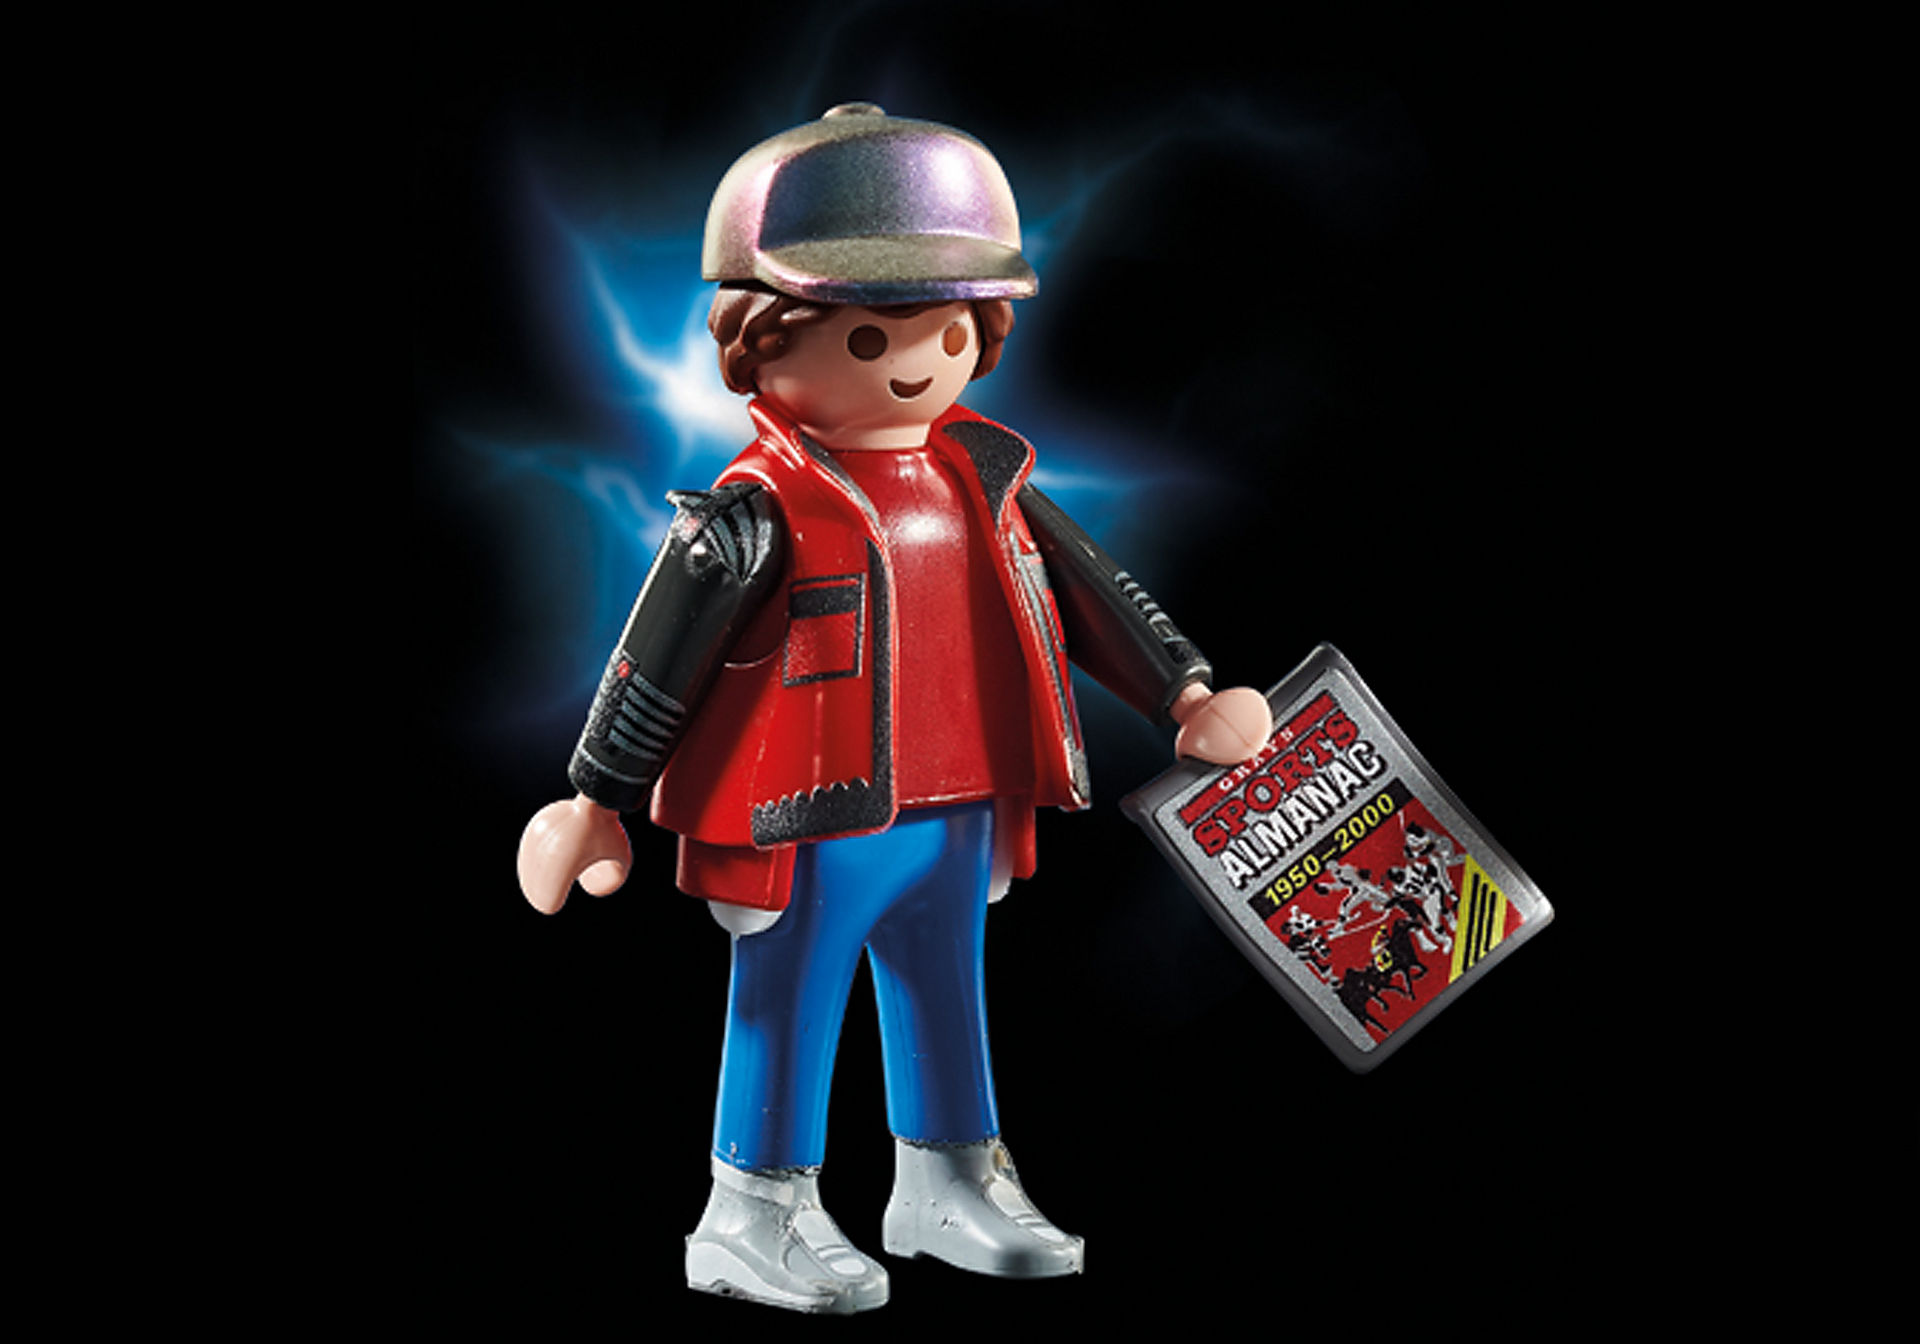 70634 Back to the Future Part II Hoverboard Chase zoom image5